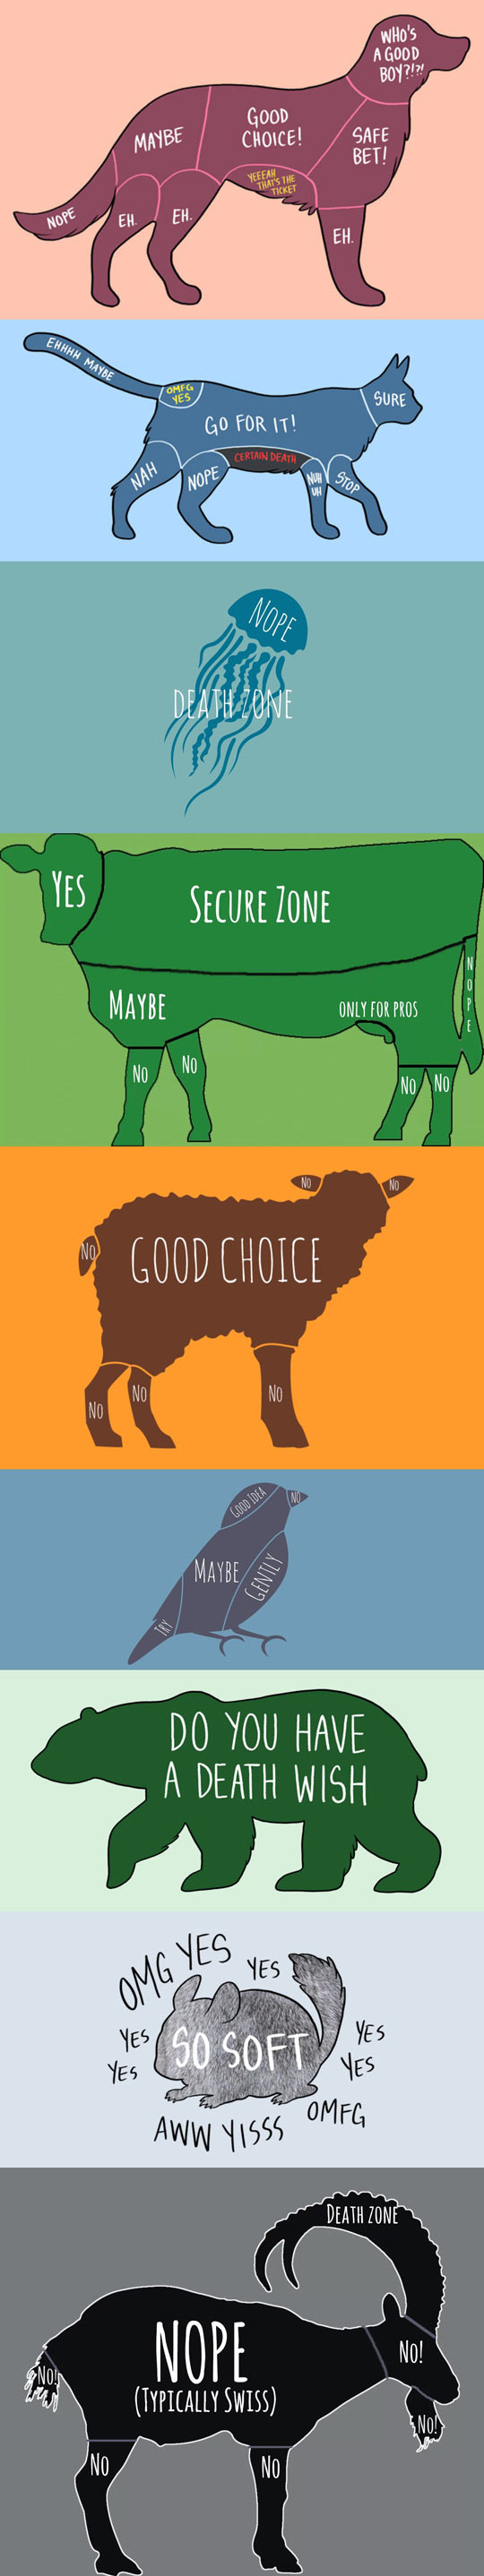 Illustrated Guide For How To Properly Pet Animals